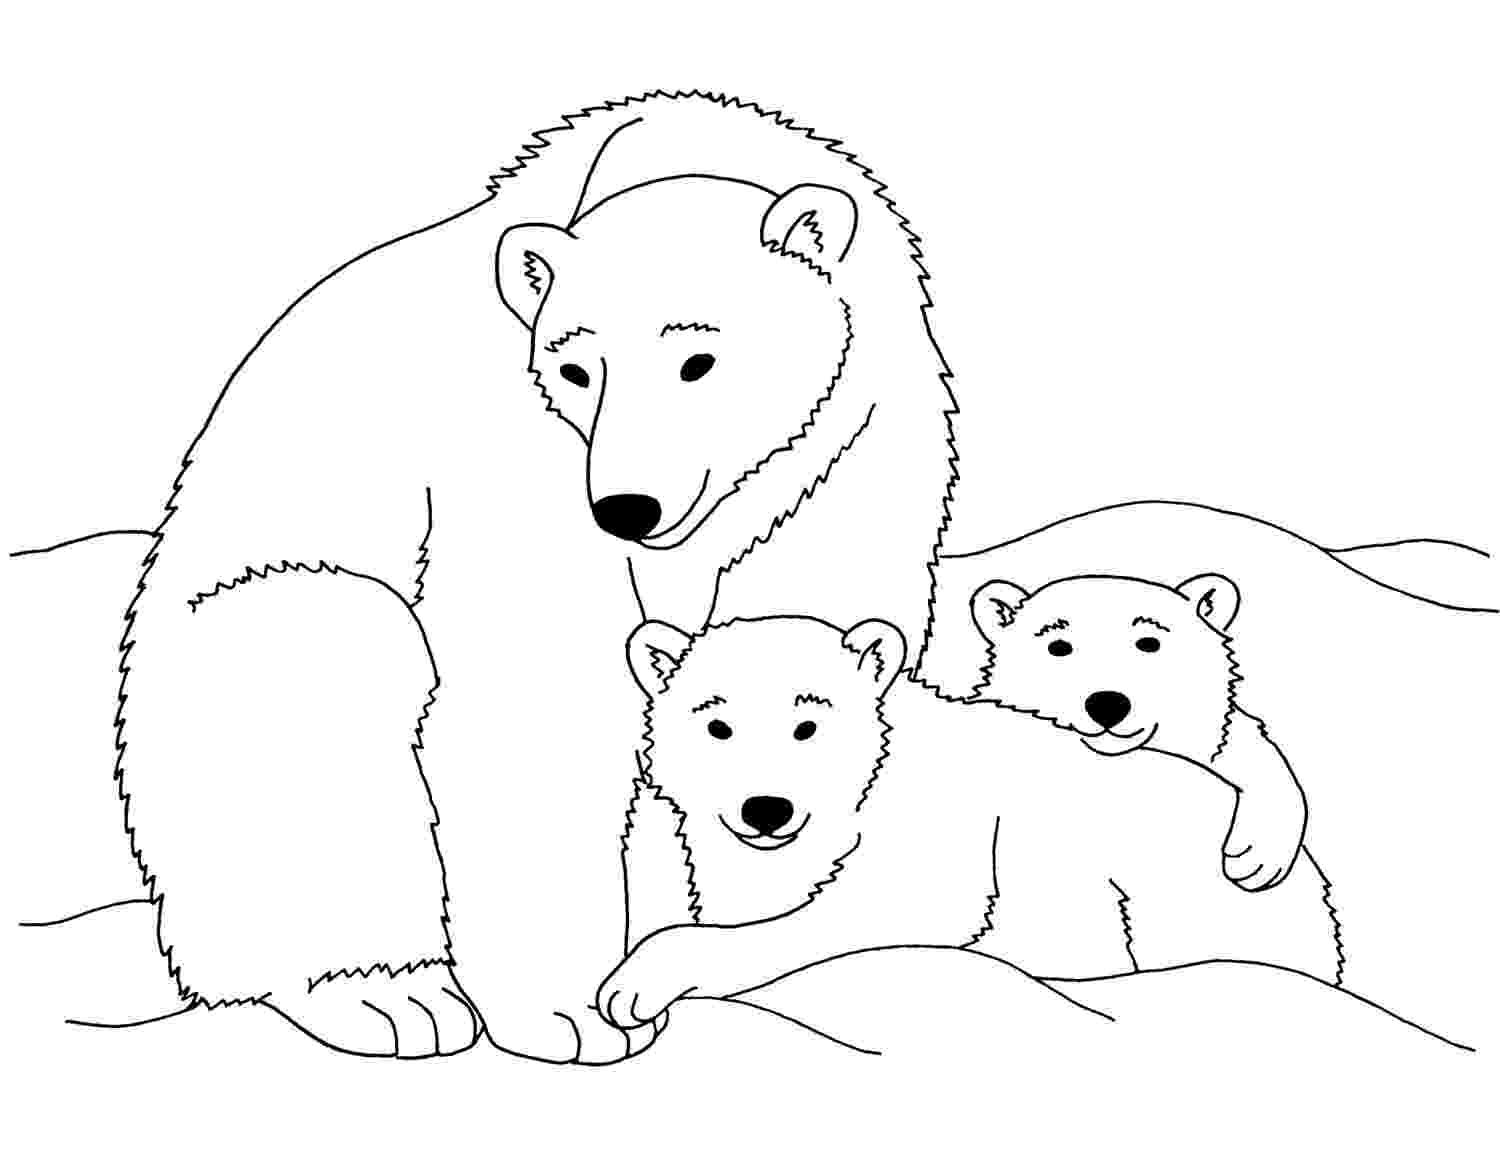 polar bears coloring pages top 10 free printable polar bear coloring pages online coloring pages polar bears